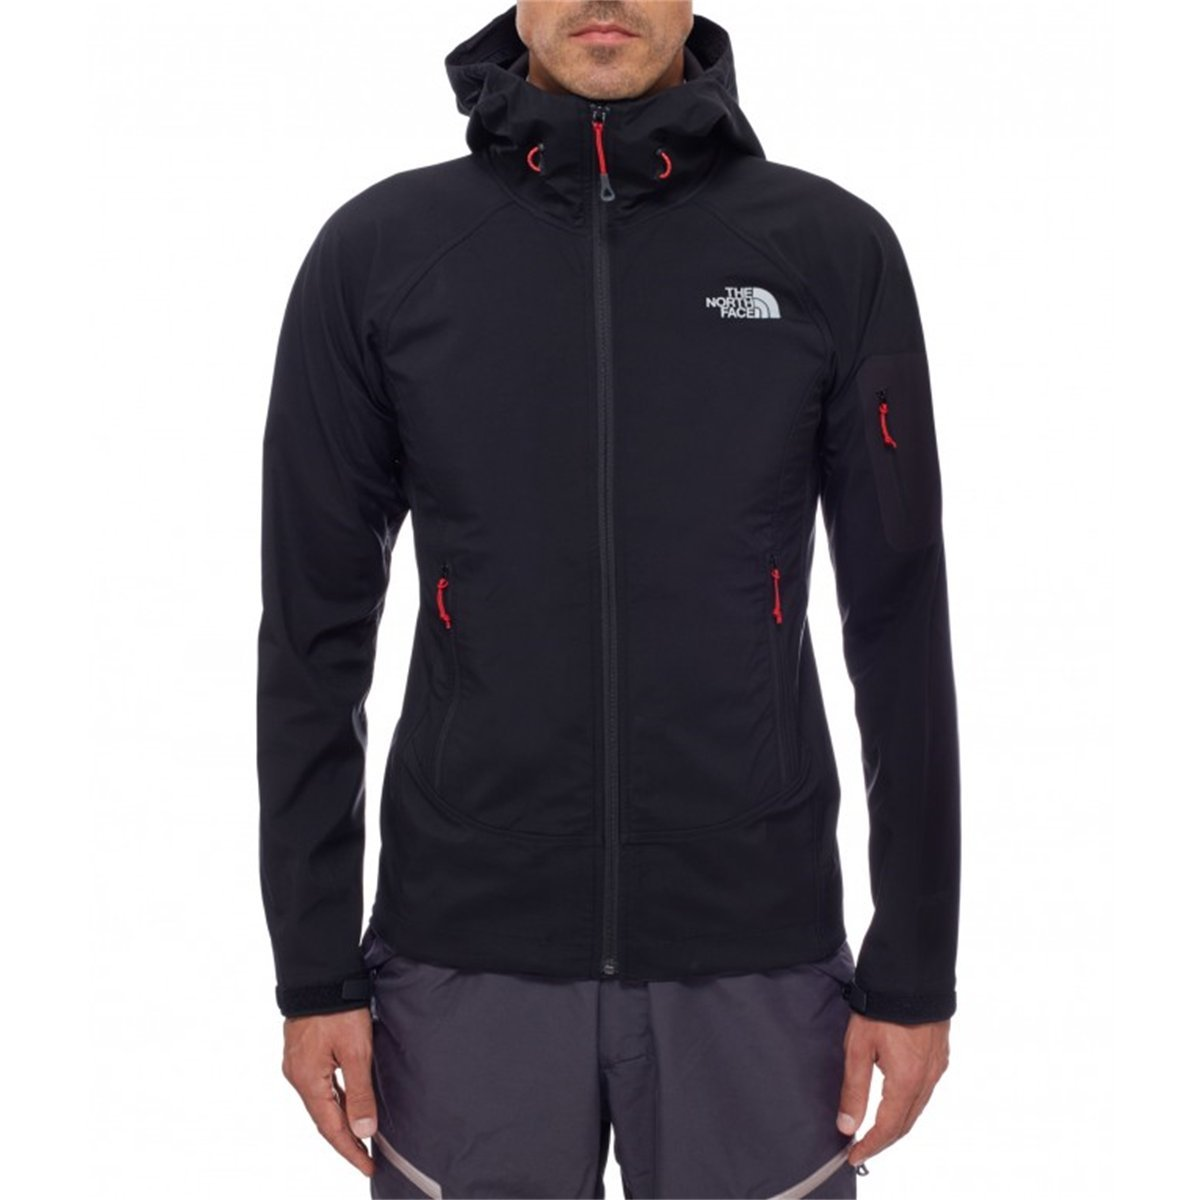 THE NORTH FACE Herren Jacke Valkyrie online kaufen